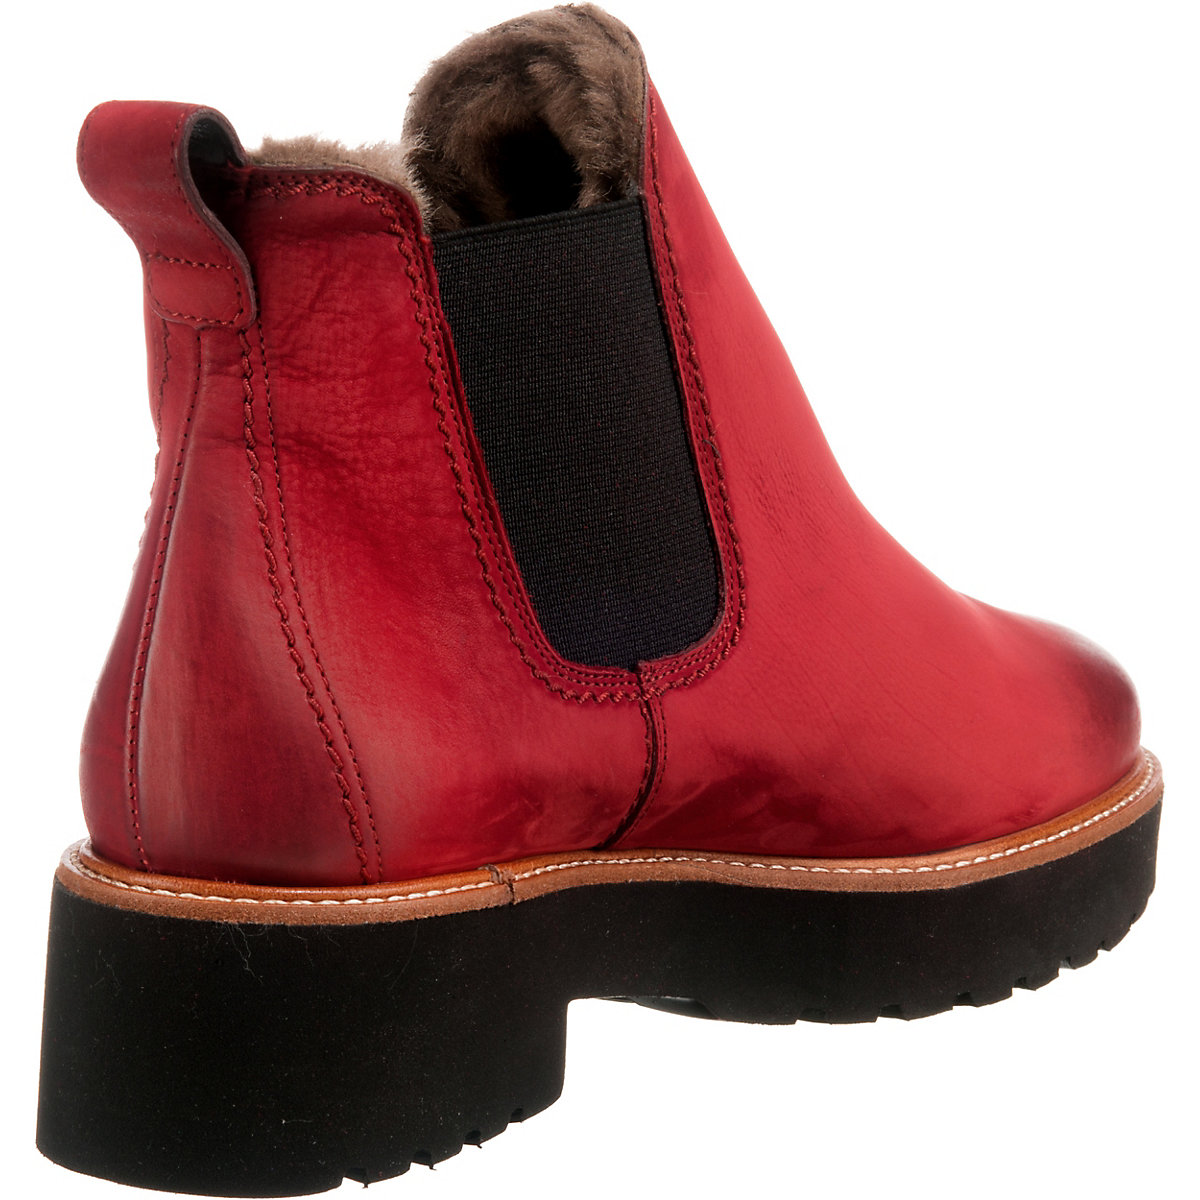 Paul Green, Chelsea Boots, Rot